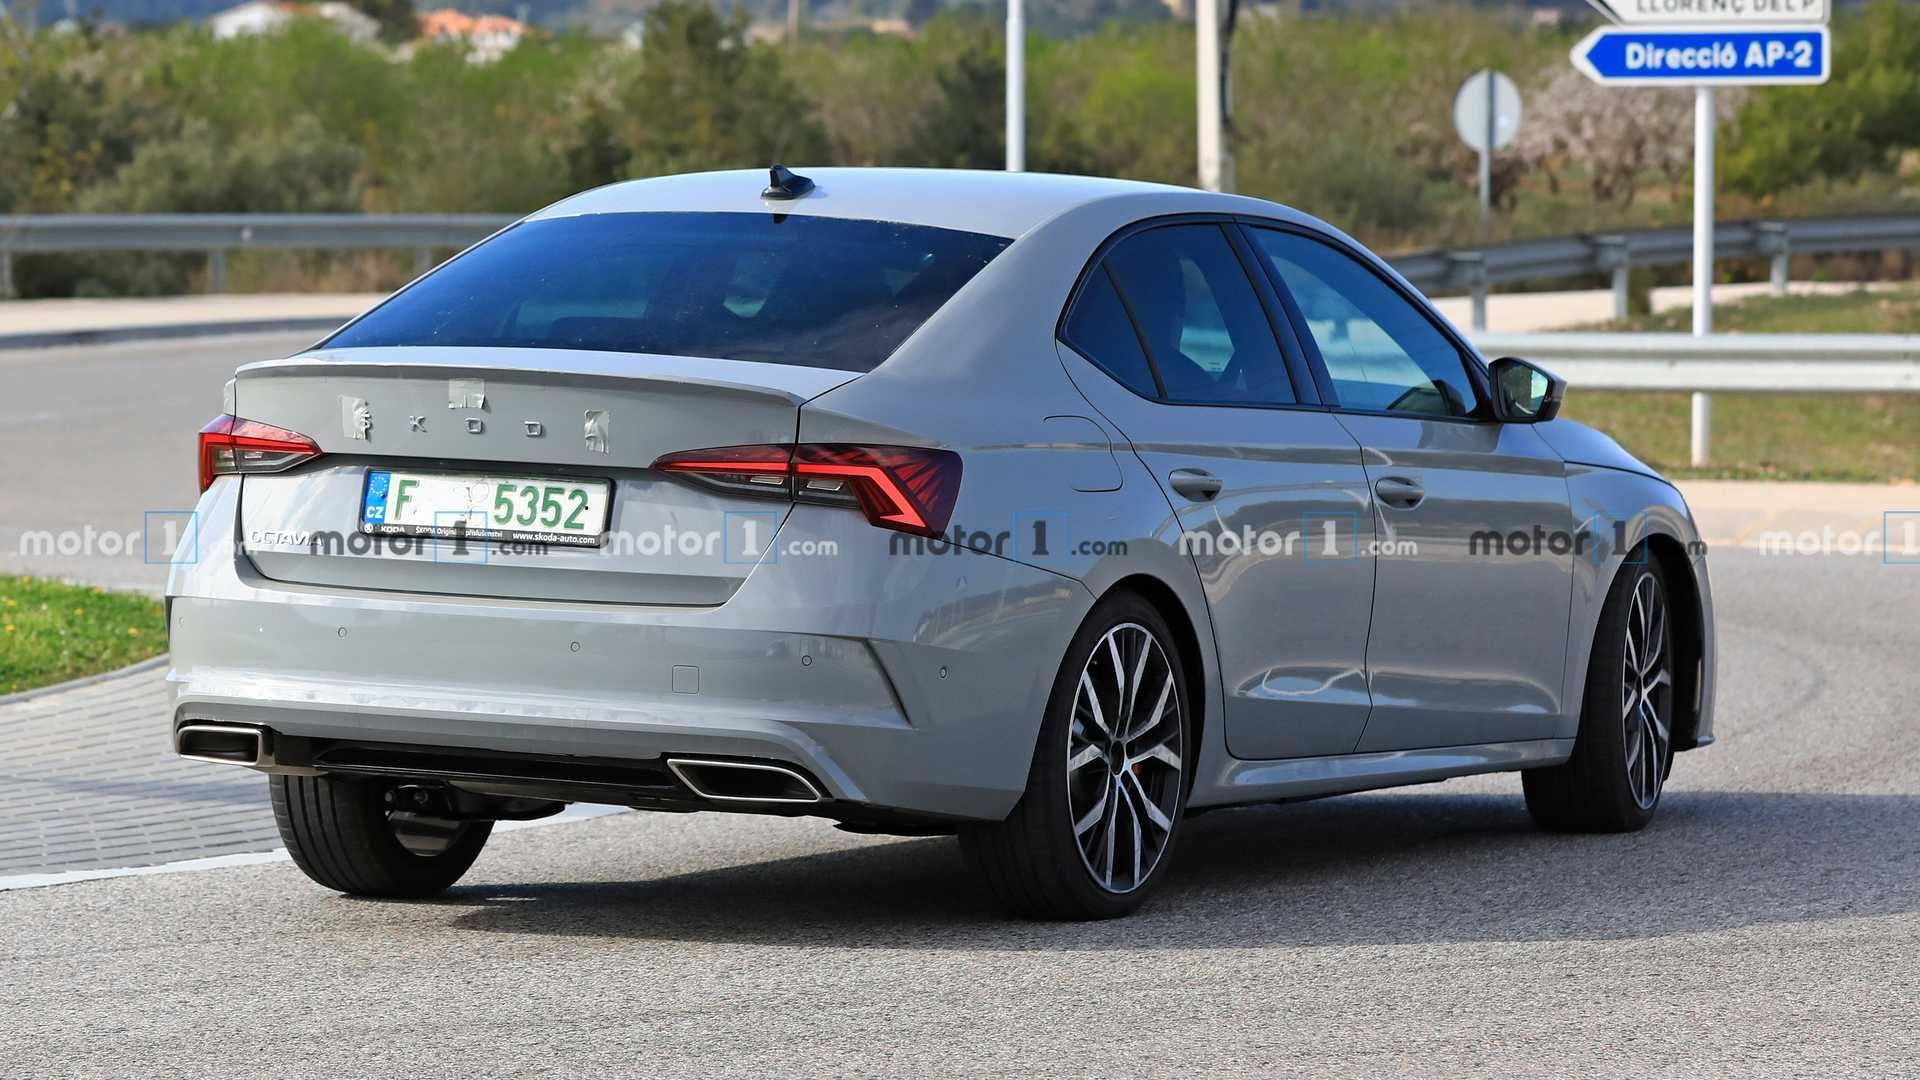 2021-skoda-octavia-rs-iv-spy-photo.jpg